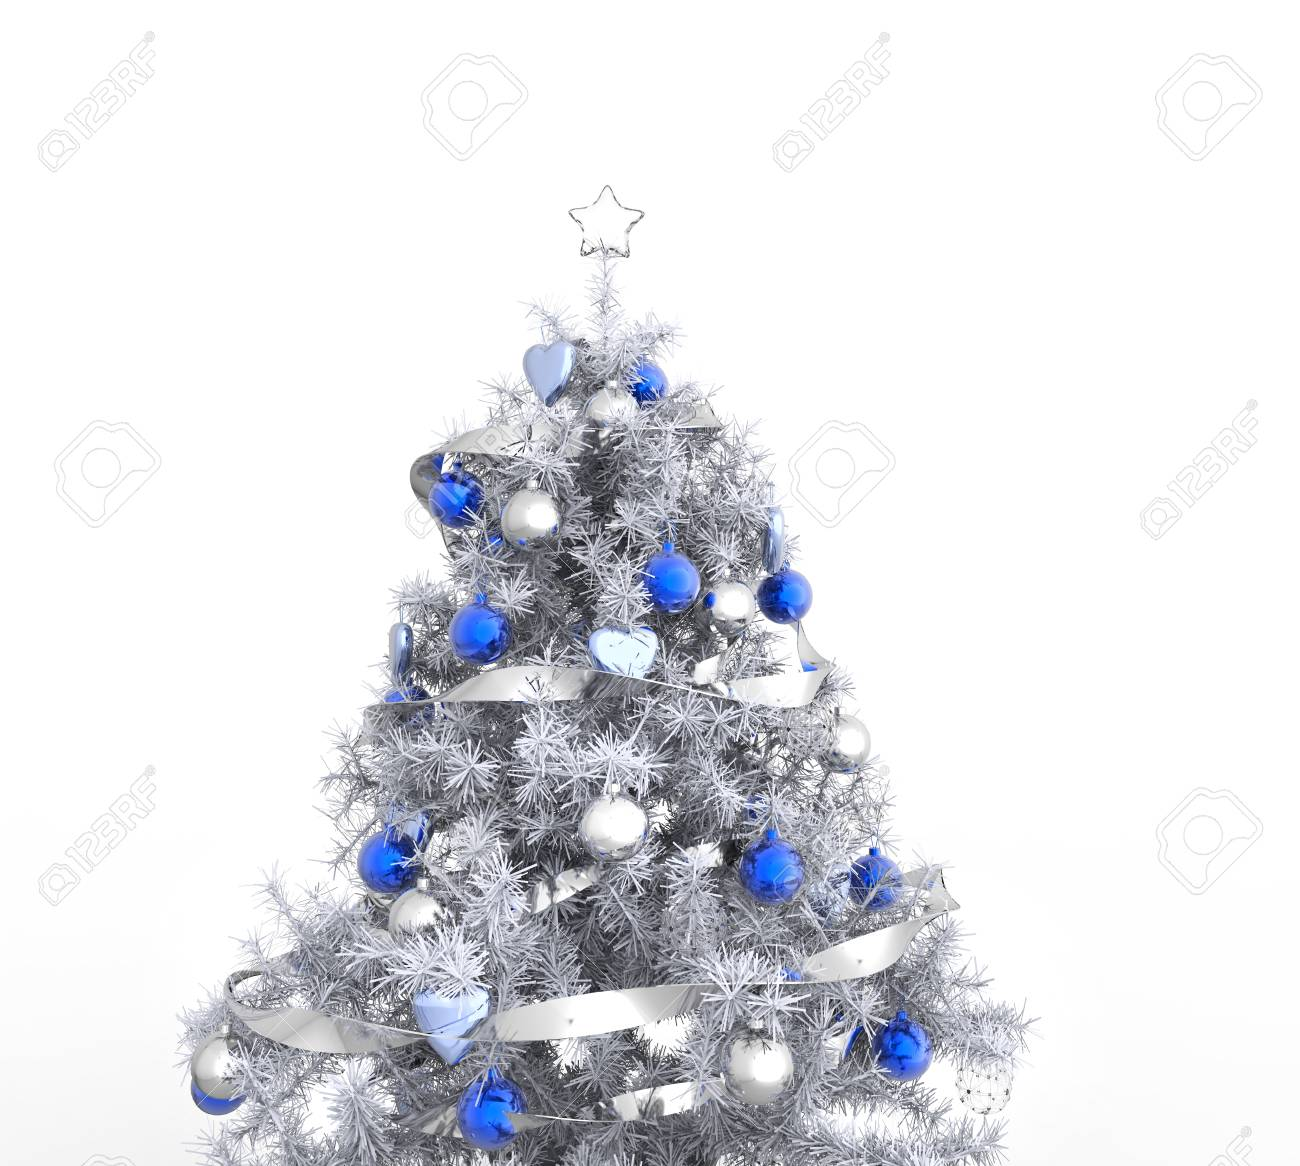 White Christmas Tree.White Christmas Tree With Blue Decorations